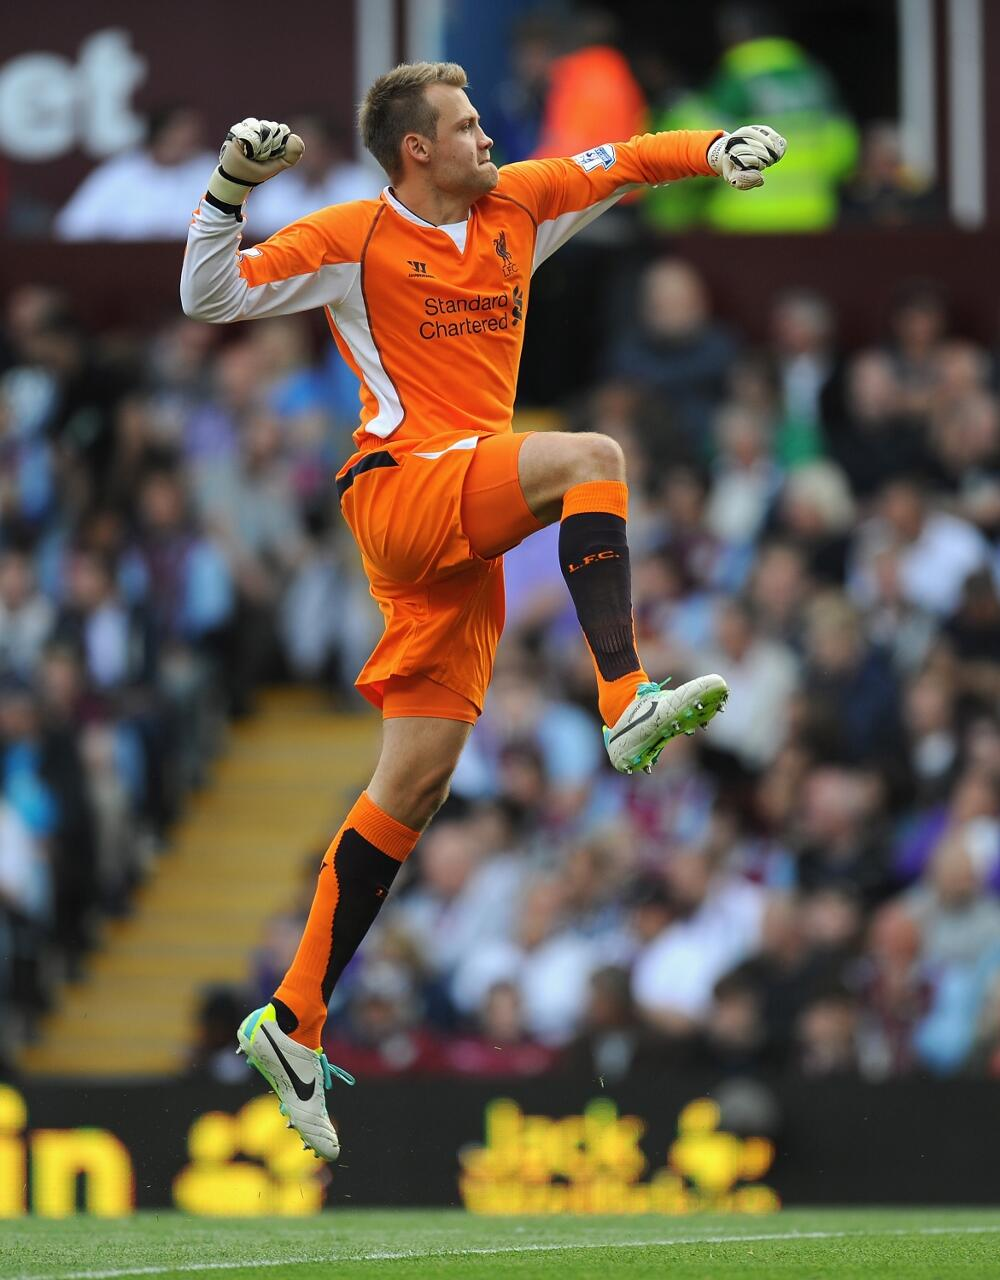 We love this - Mignolet celebrating the first goal #AVFC 0-1 #LFC http://t.co/JaqnorGP6i